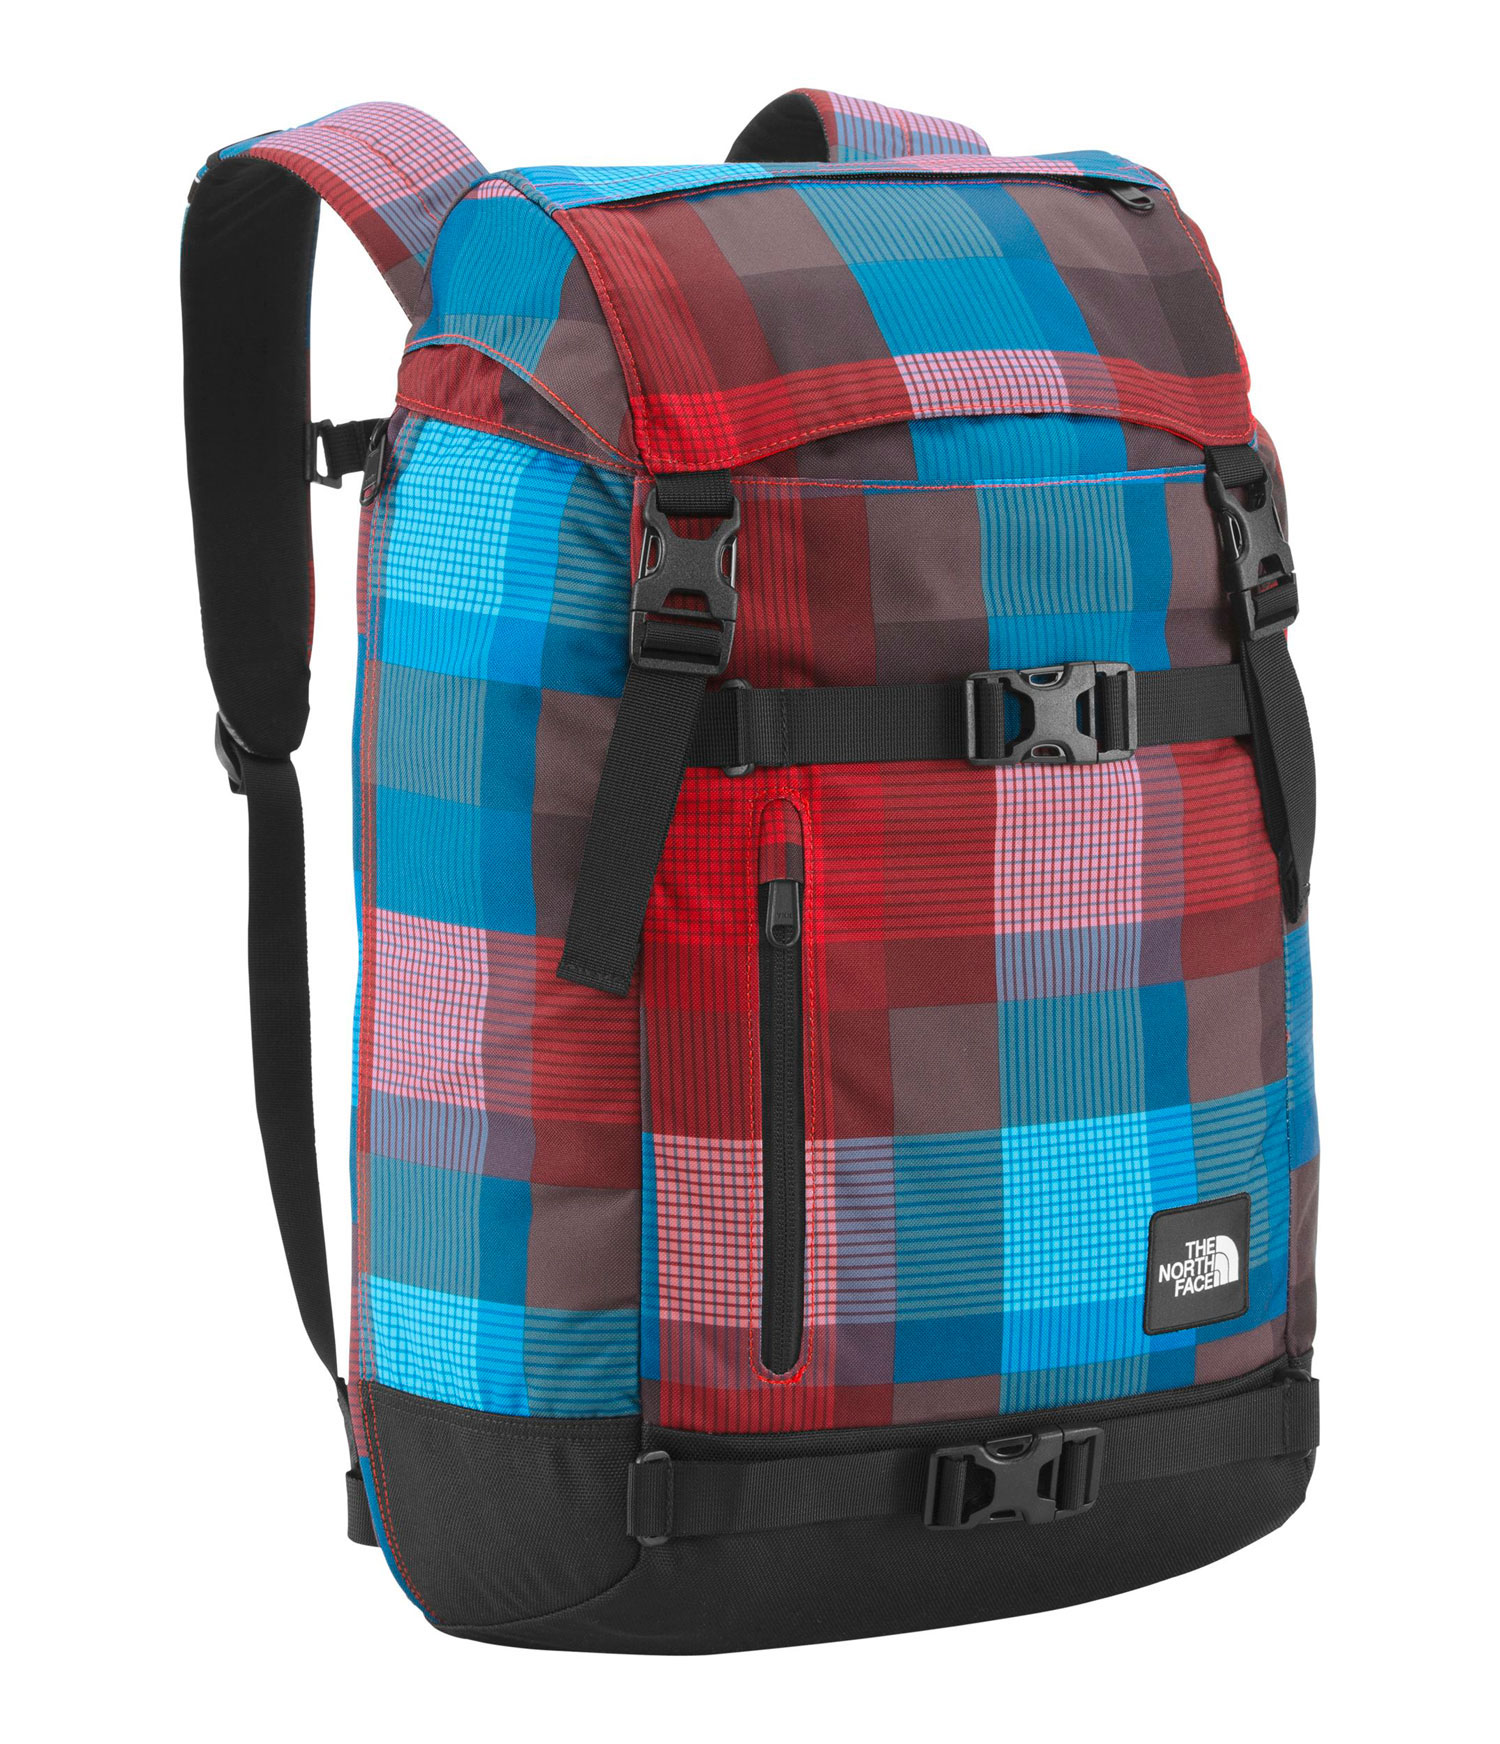 Spacious rucksack that's ready to rally anytime, anywhere. Key Features of The North Face Pre-Hab Backpack: Avg Weight: 2 lbs 5 oz (1050 g  Volume: 1710 in³ (28 liters  Fabric: black: 630D ballistics nylon, 1200D polyester colors: 600D polyester print, 1200D polyester Spacious rucksack that's ready to rally anytime, anywhere. FlexVent   injection-molded shoulder straps Comfortable, padded Airmesh back  panel Zippered, dedicated laptop compartment with side and top access Large main compartment with cinch closure Zippered tricot-lined  stash pocket on top lid Front zippered and open stash pockets Removable sternum strap - $61.95